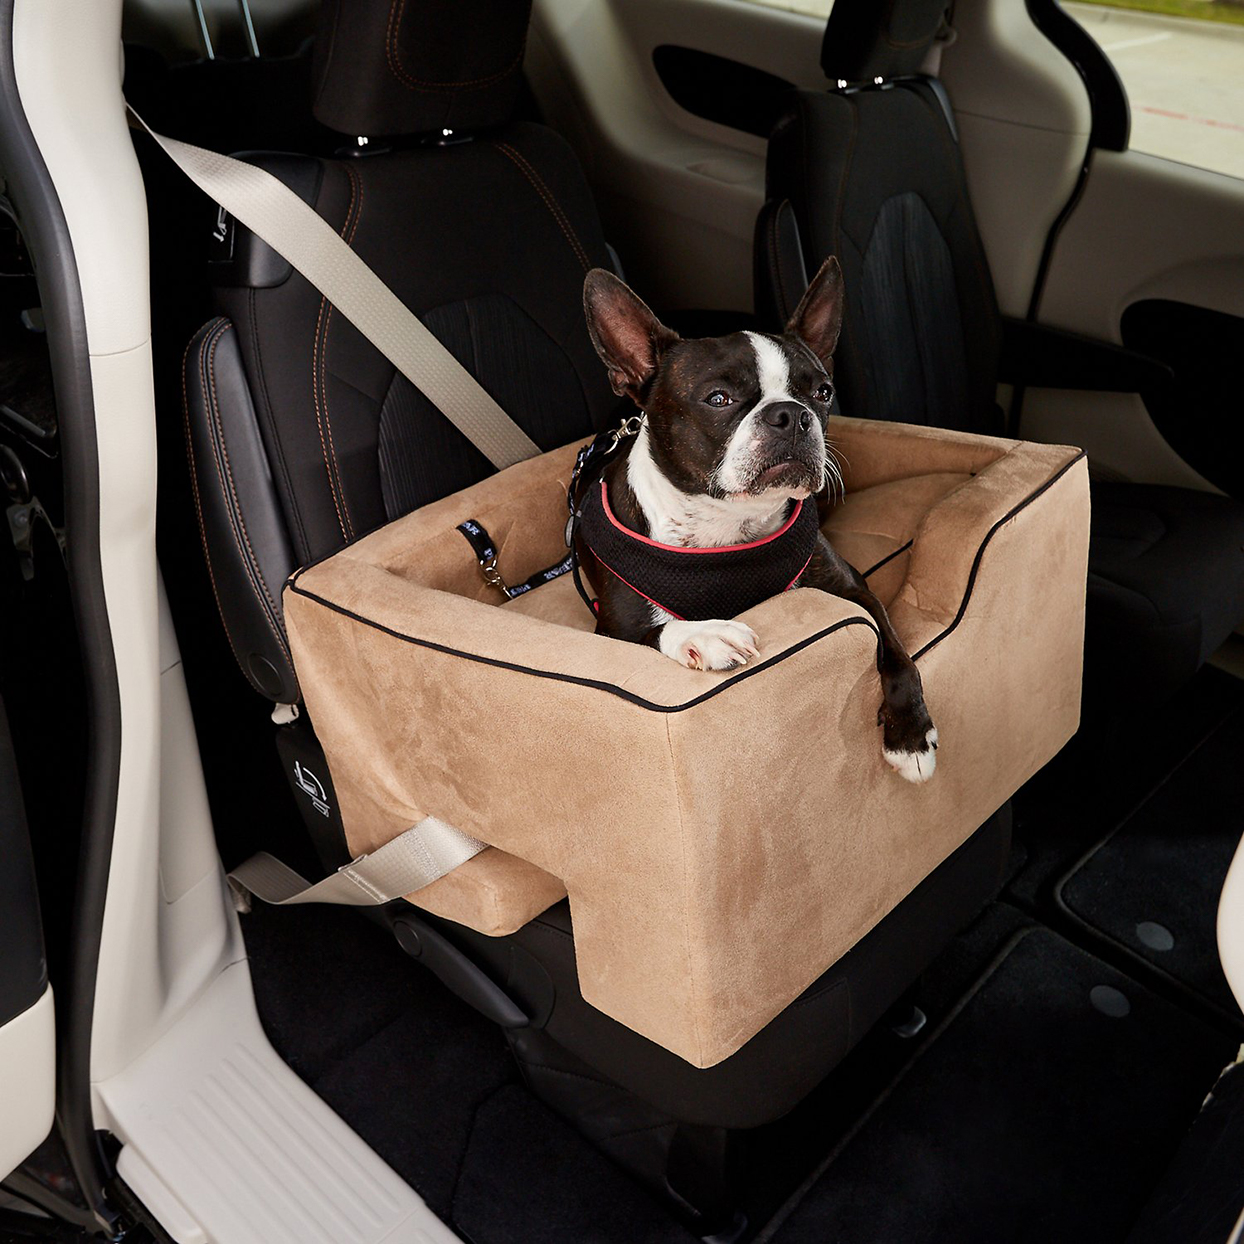 Dog sitting in a Pet Gear Large Car Booster seat